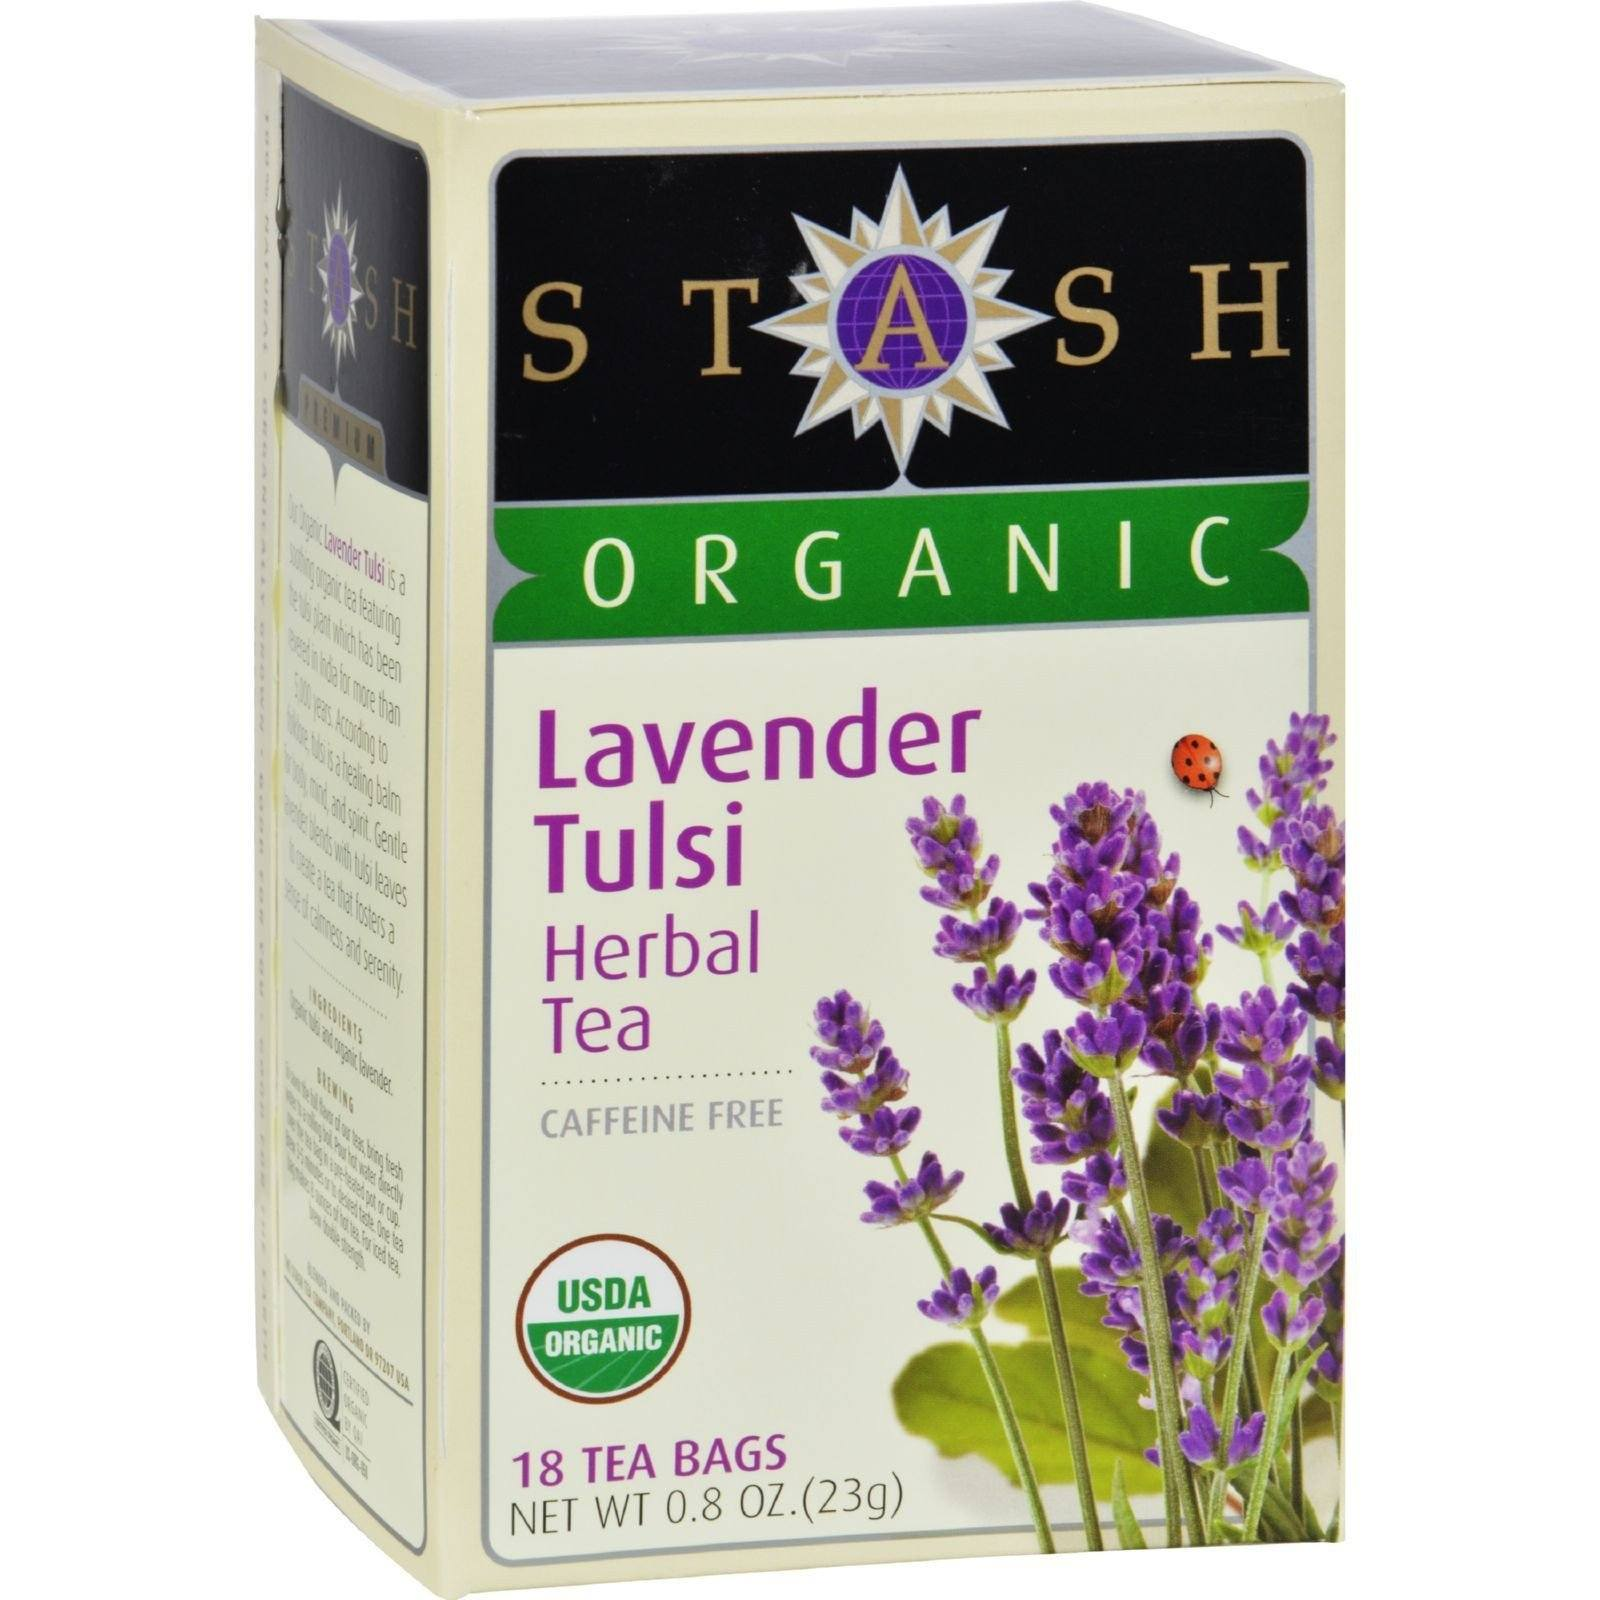 Food & Drink - Stash -Organic Lavender Tulsi Tea - 18 Bags